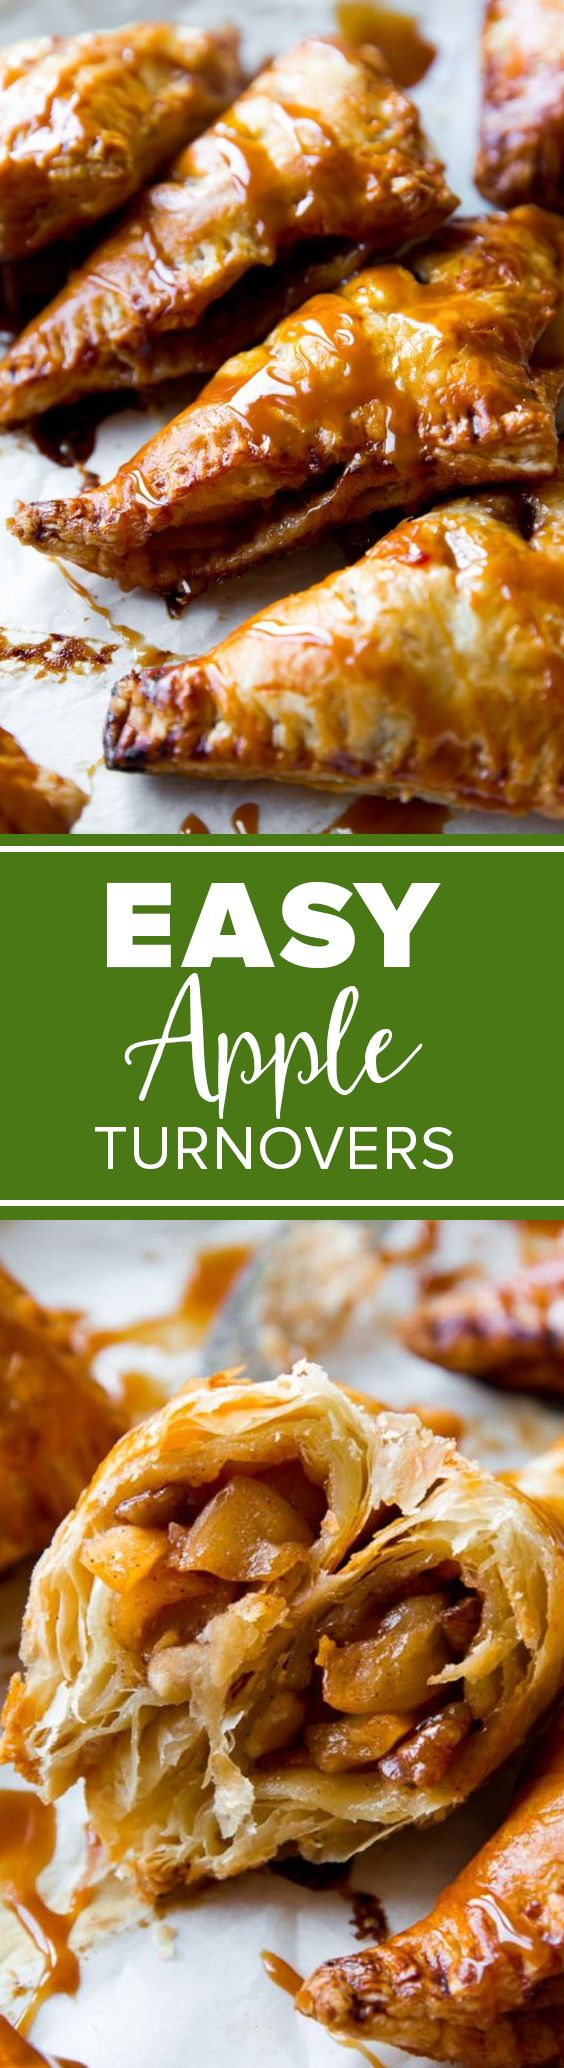 Apple Turnovers Wth Yellow Cake Mix